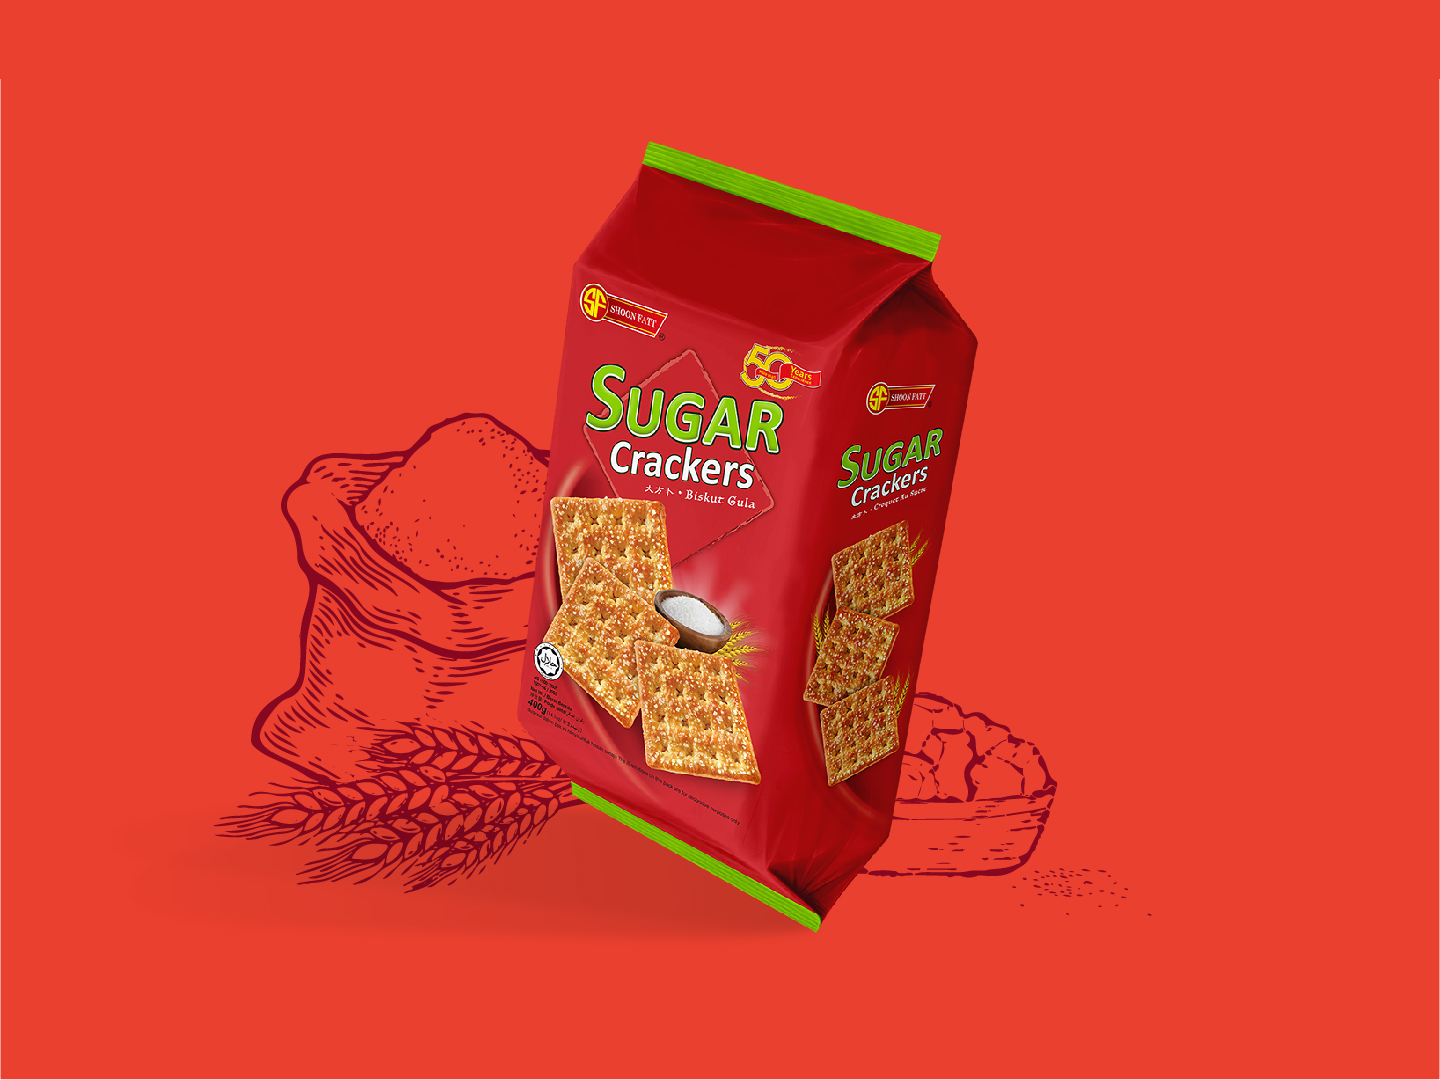 Shoon Fatt Sugar Crackers